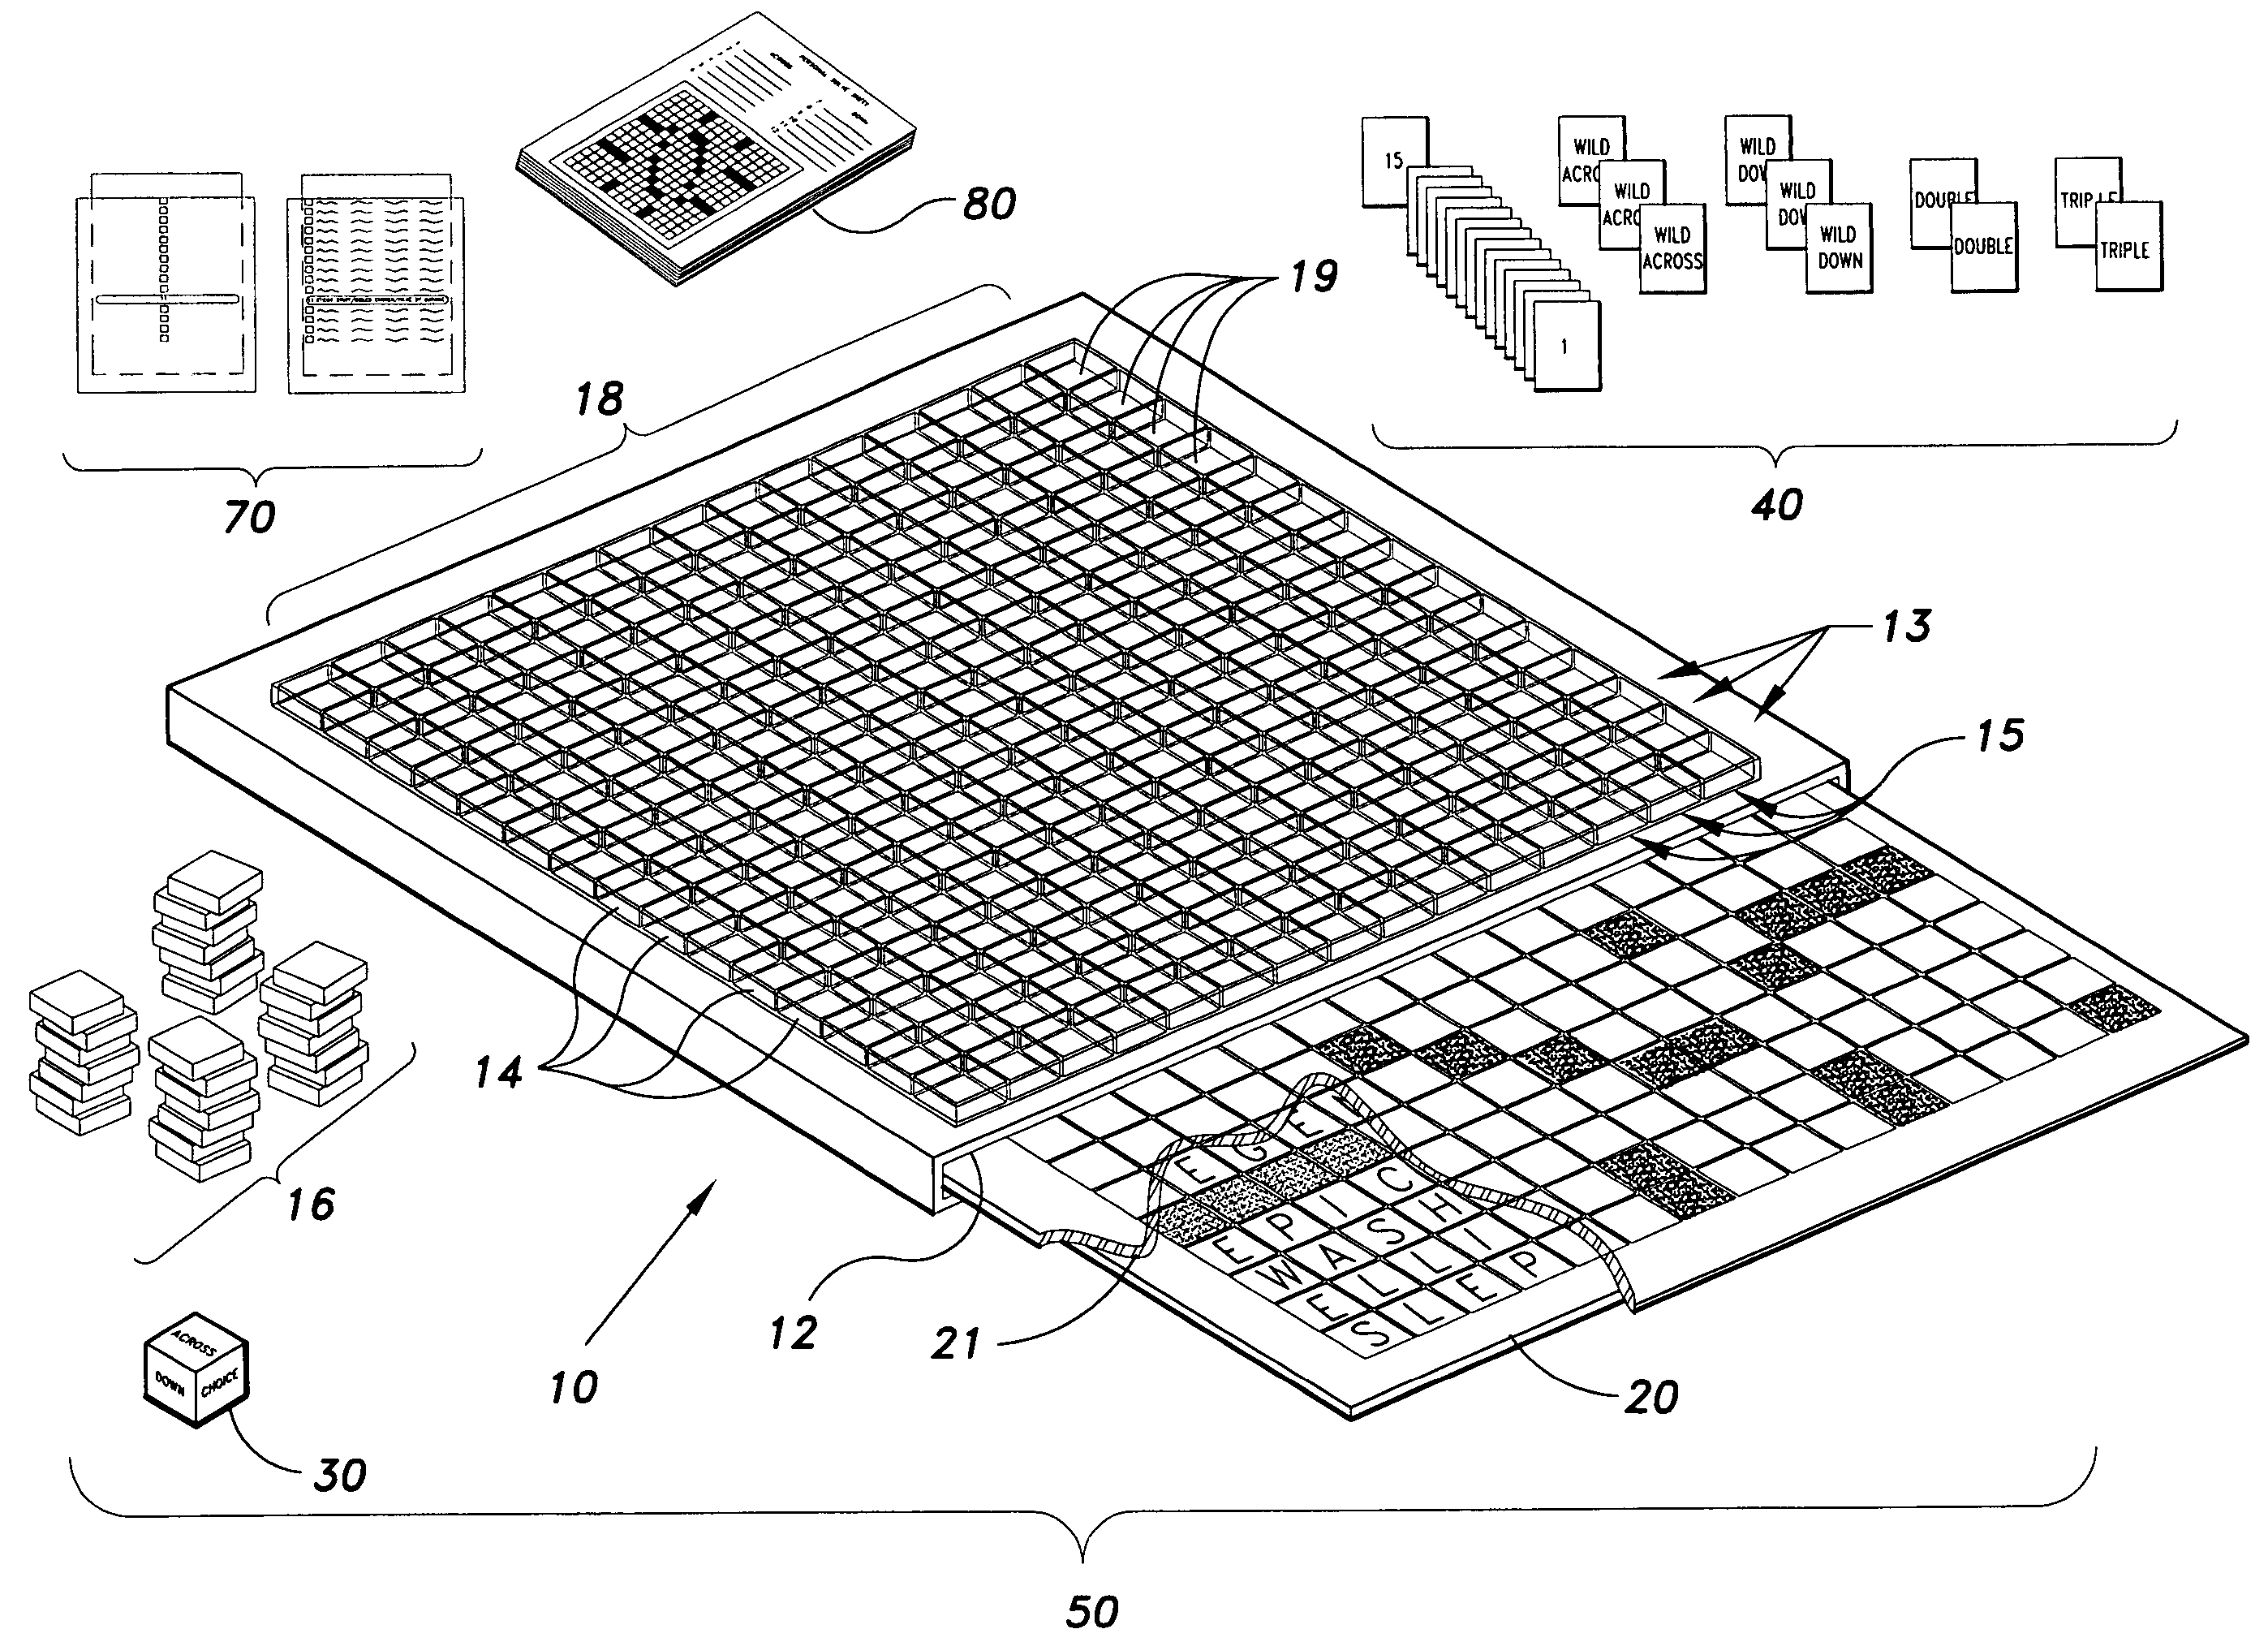 Patent US7275746 - Crossword puzzle board game - Google Patents